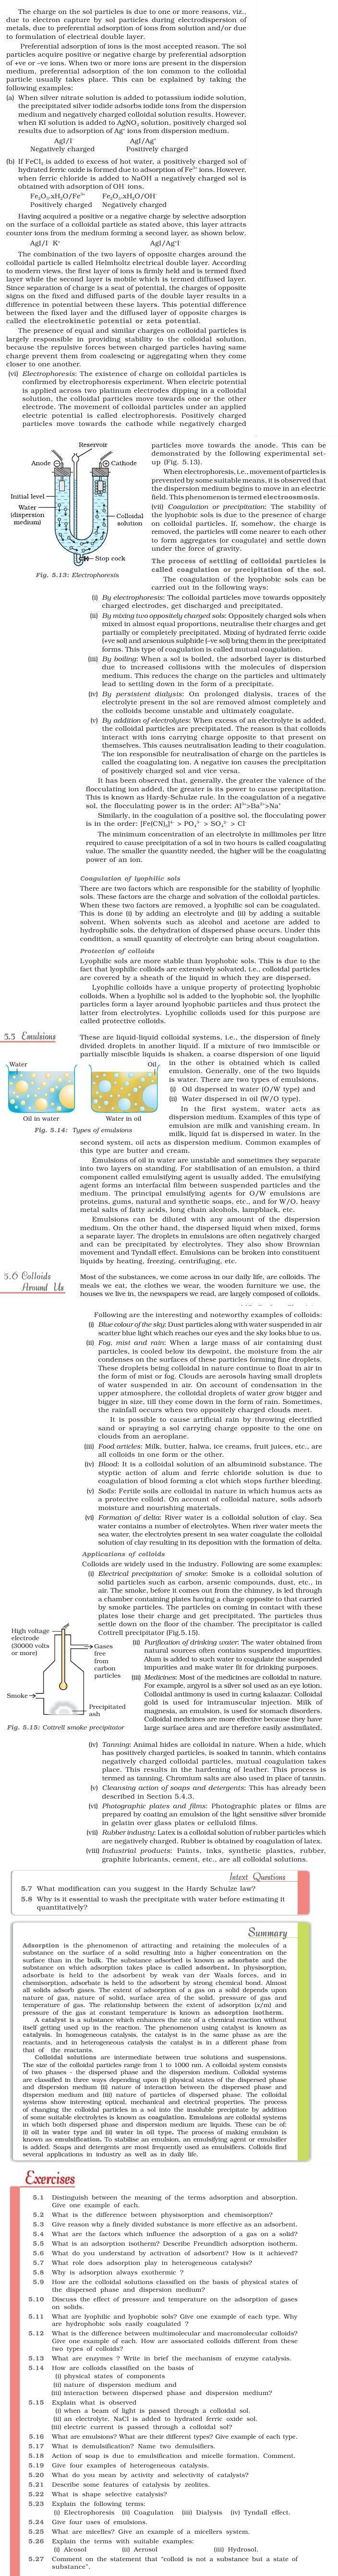 NCERT Class XII Chemistry Chapter 5 - Surface Chemistry